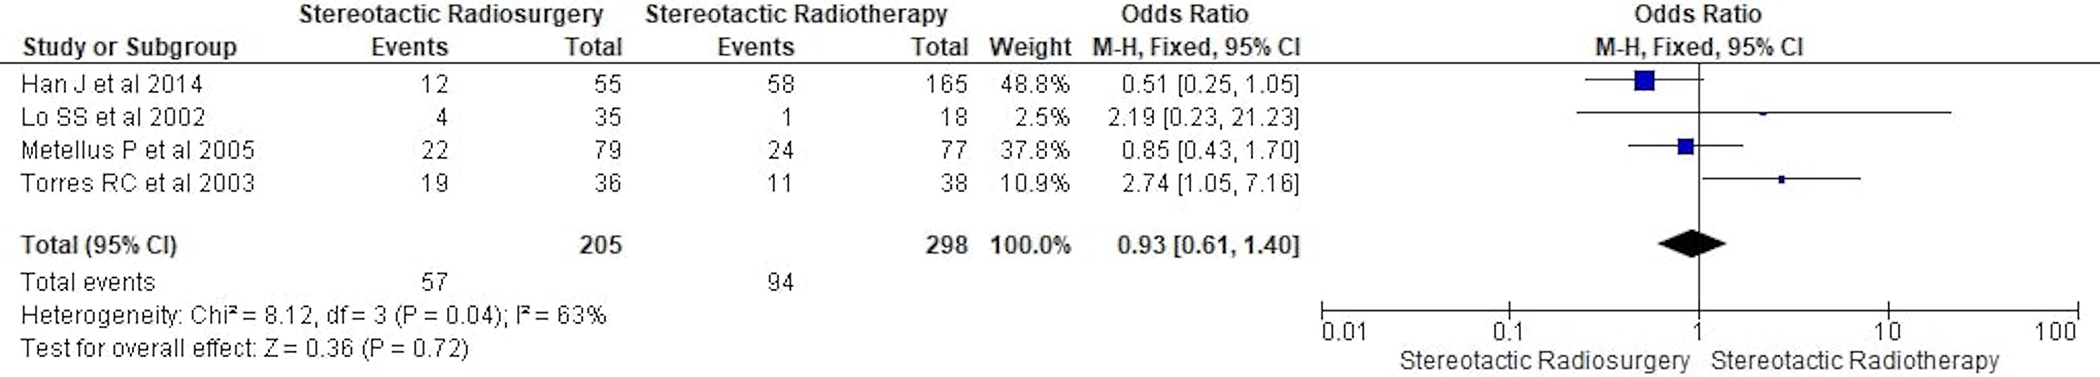 Stereotactic radiosurgery versus stereotactic radiotherapy